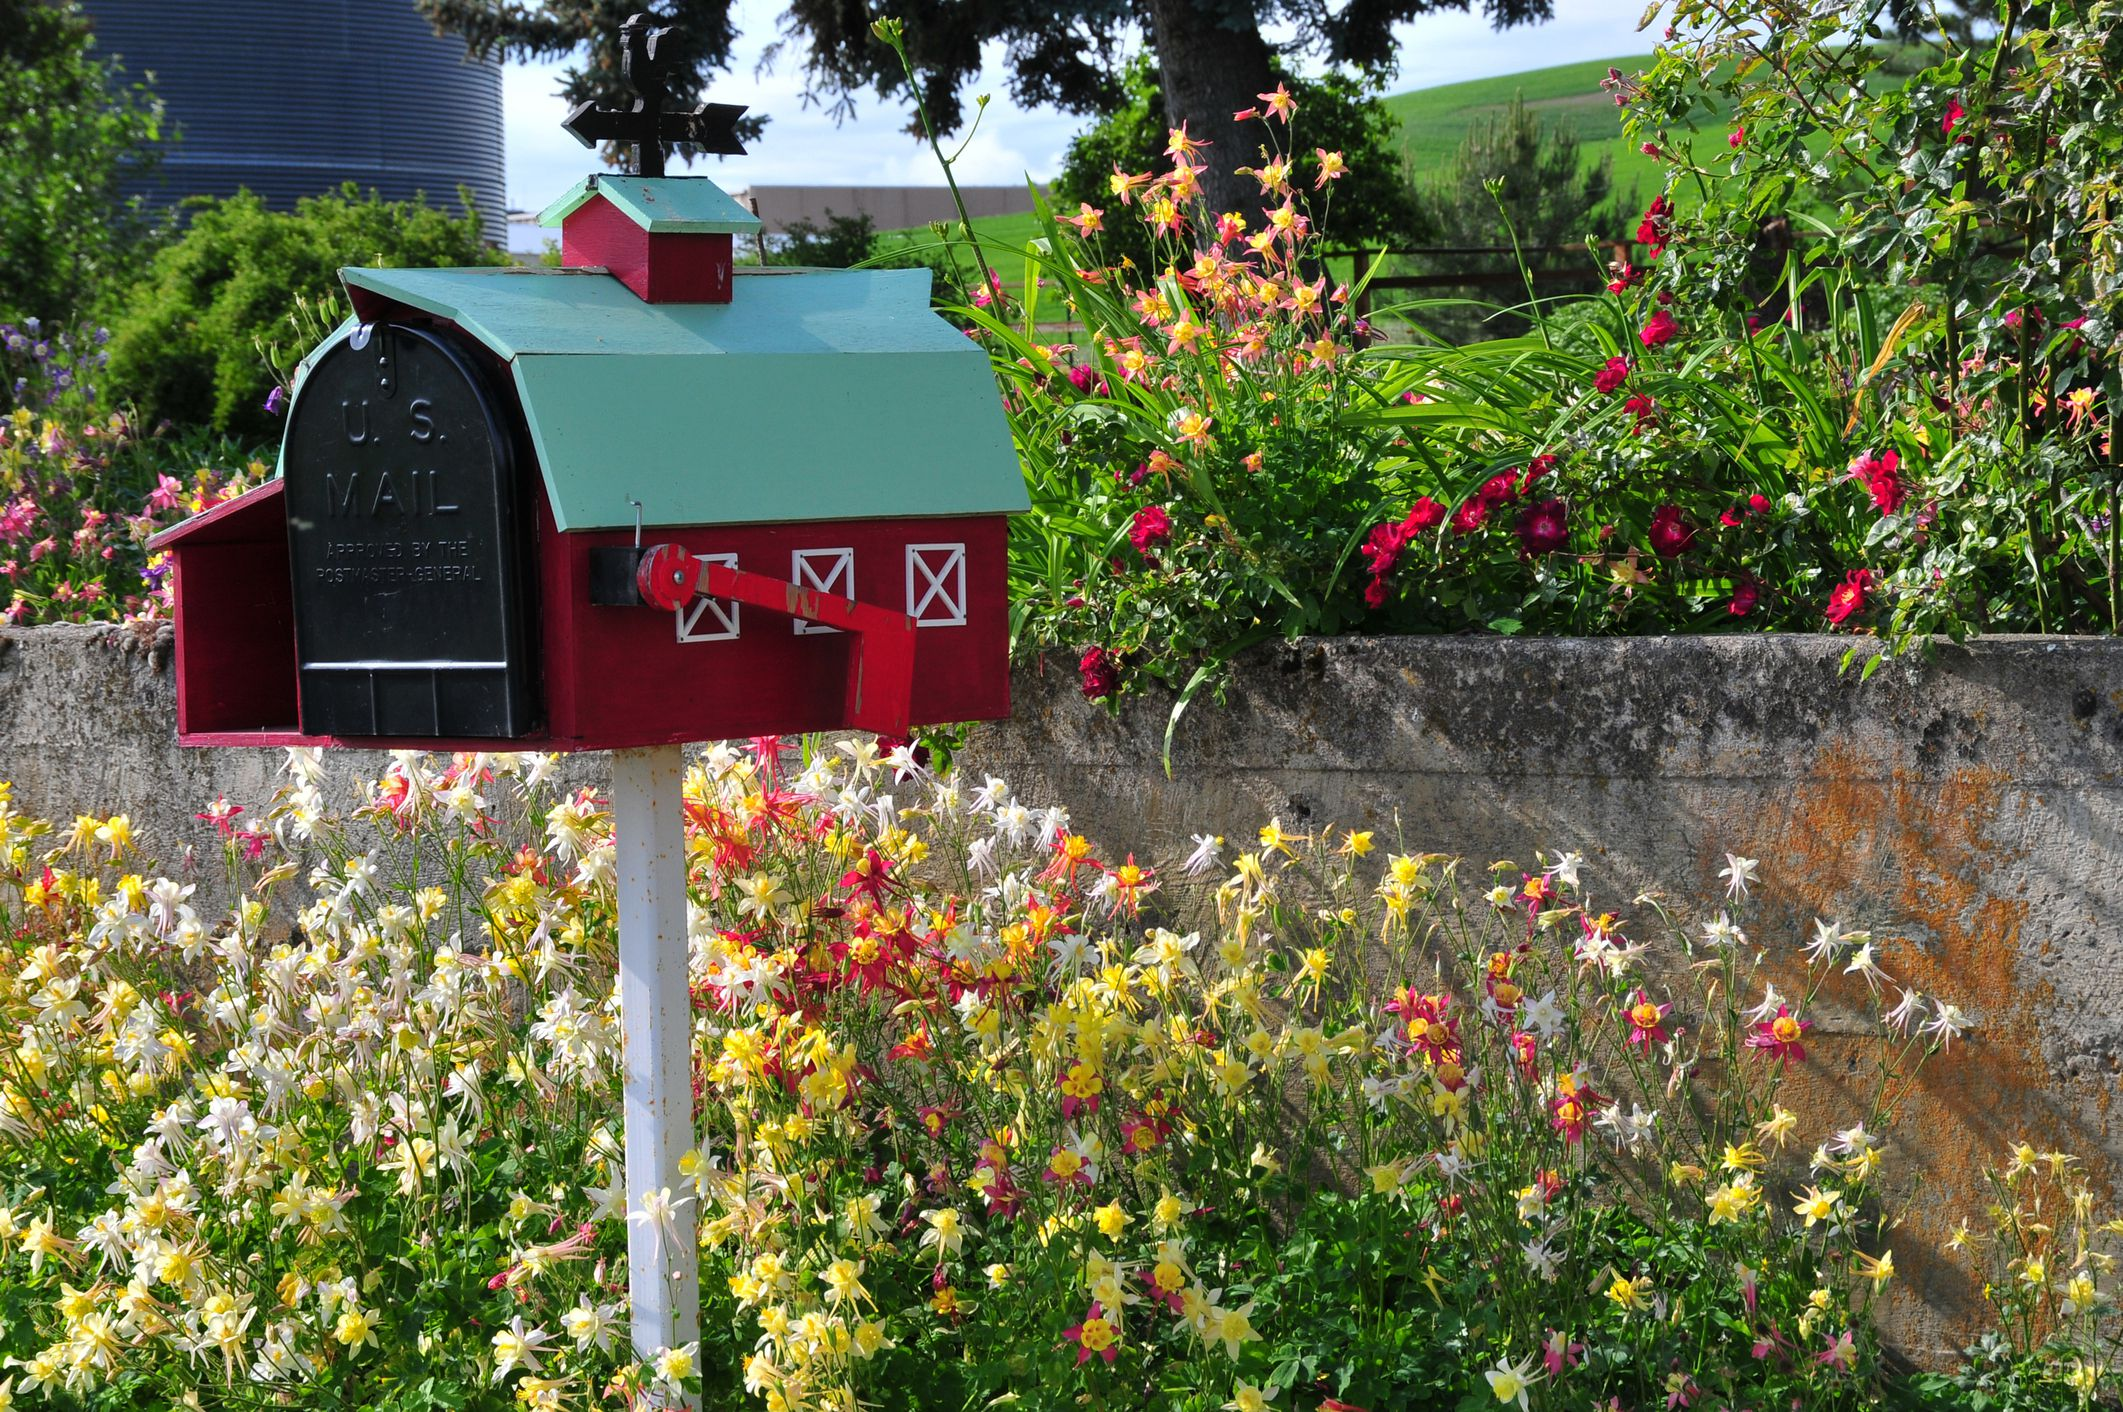 Recommendations For Flowers To Plant Around A Mailbox